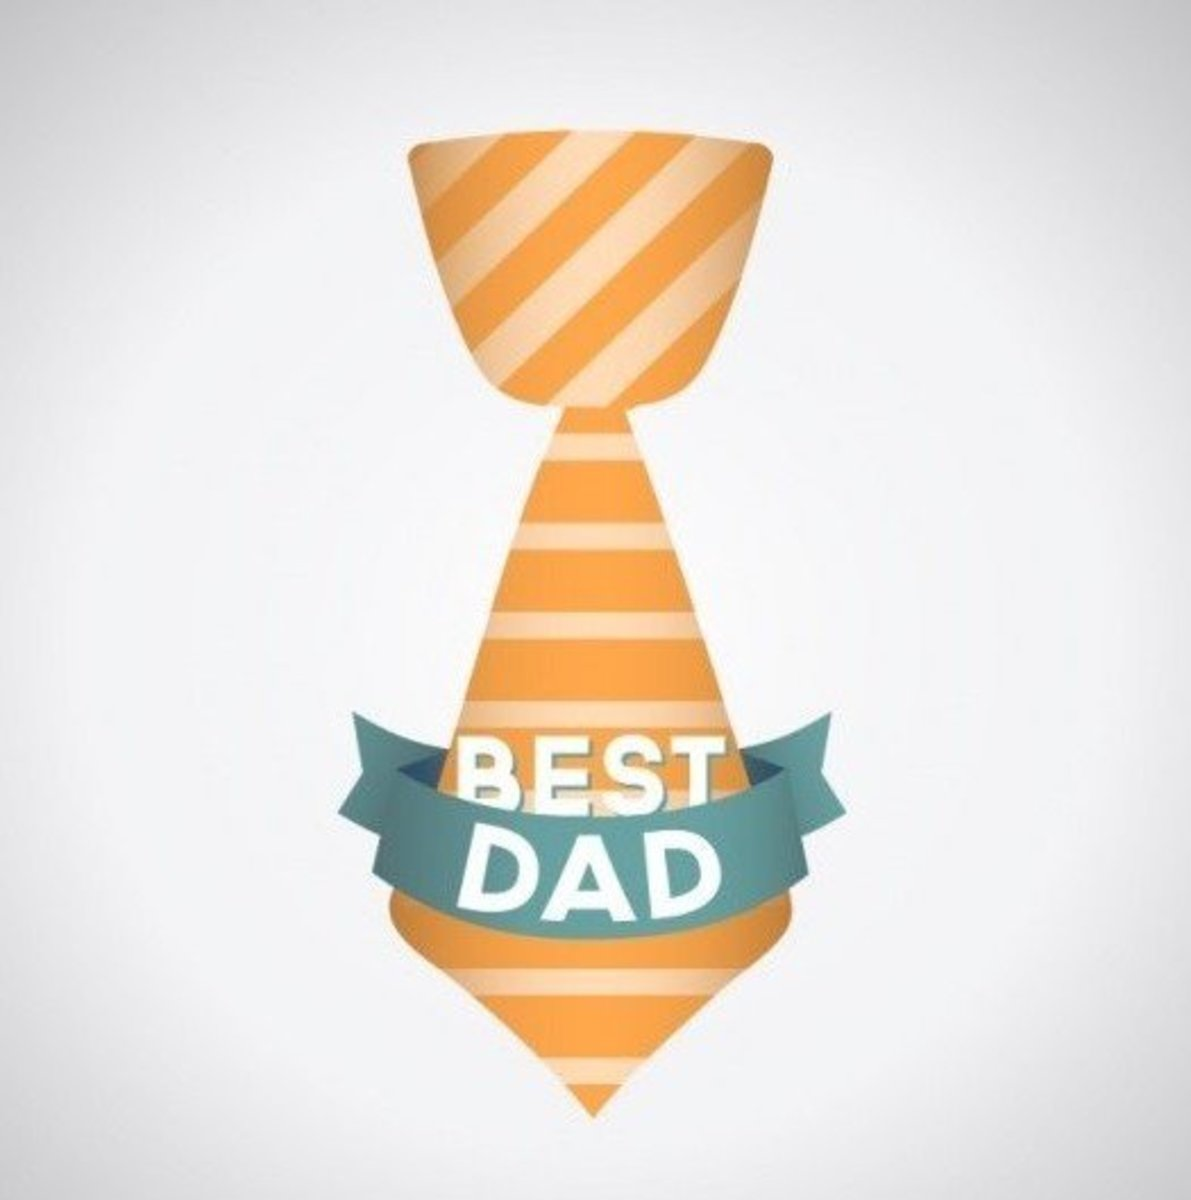 'Best Dad' on a Tie